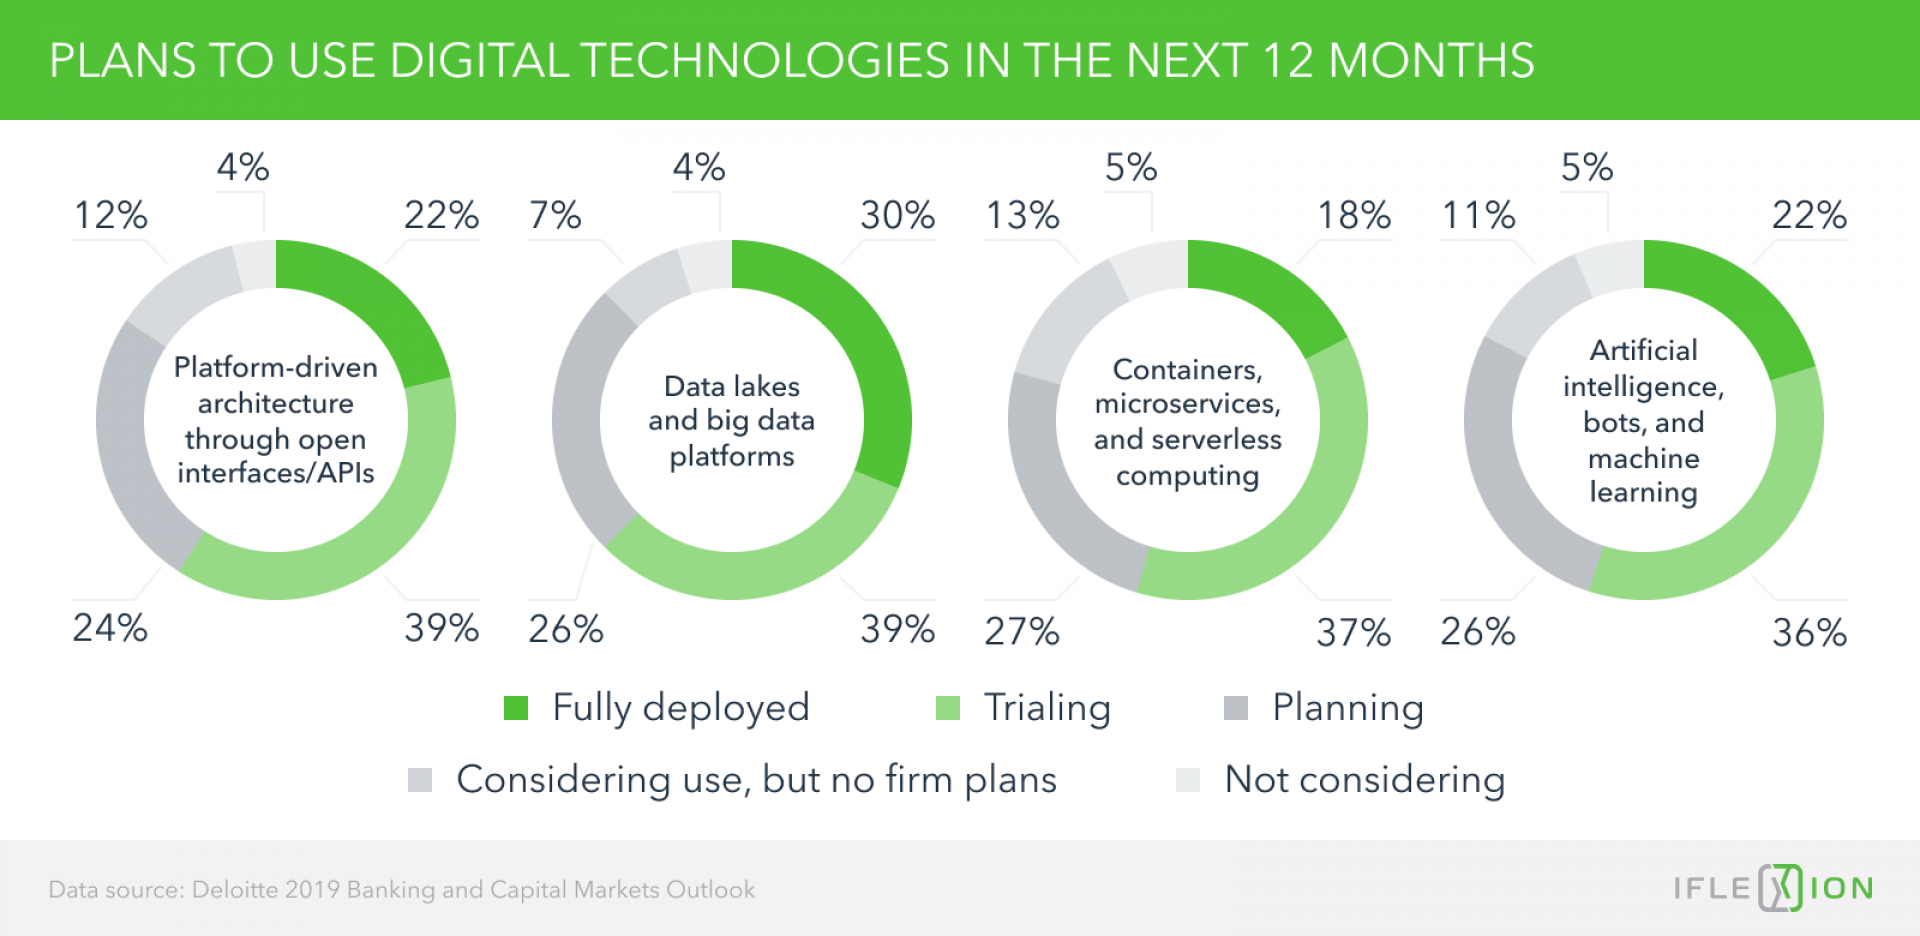 7 Mobile Banking Trends That Will Be Huge in the Next 3 Years